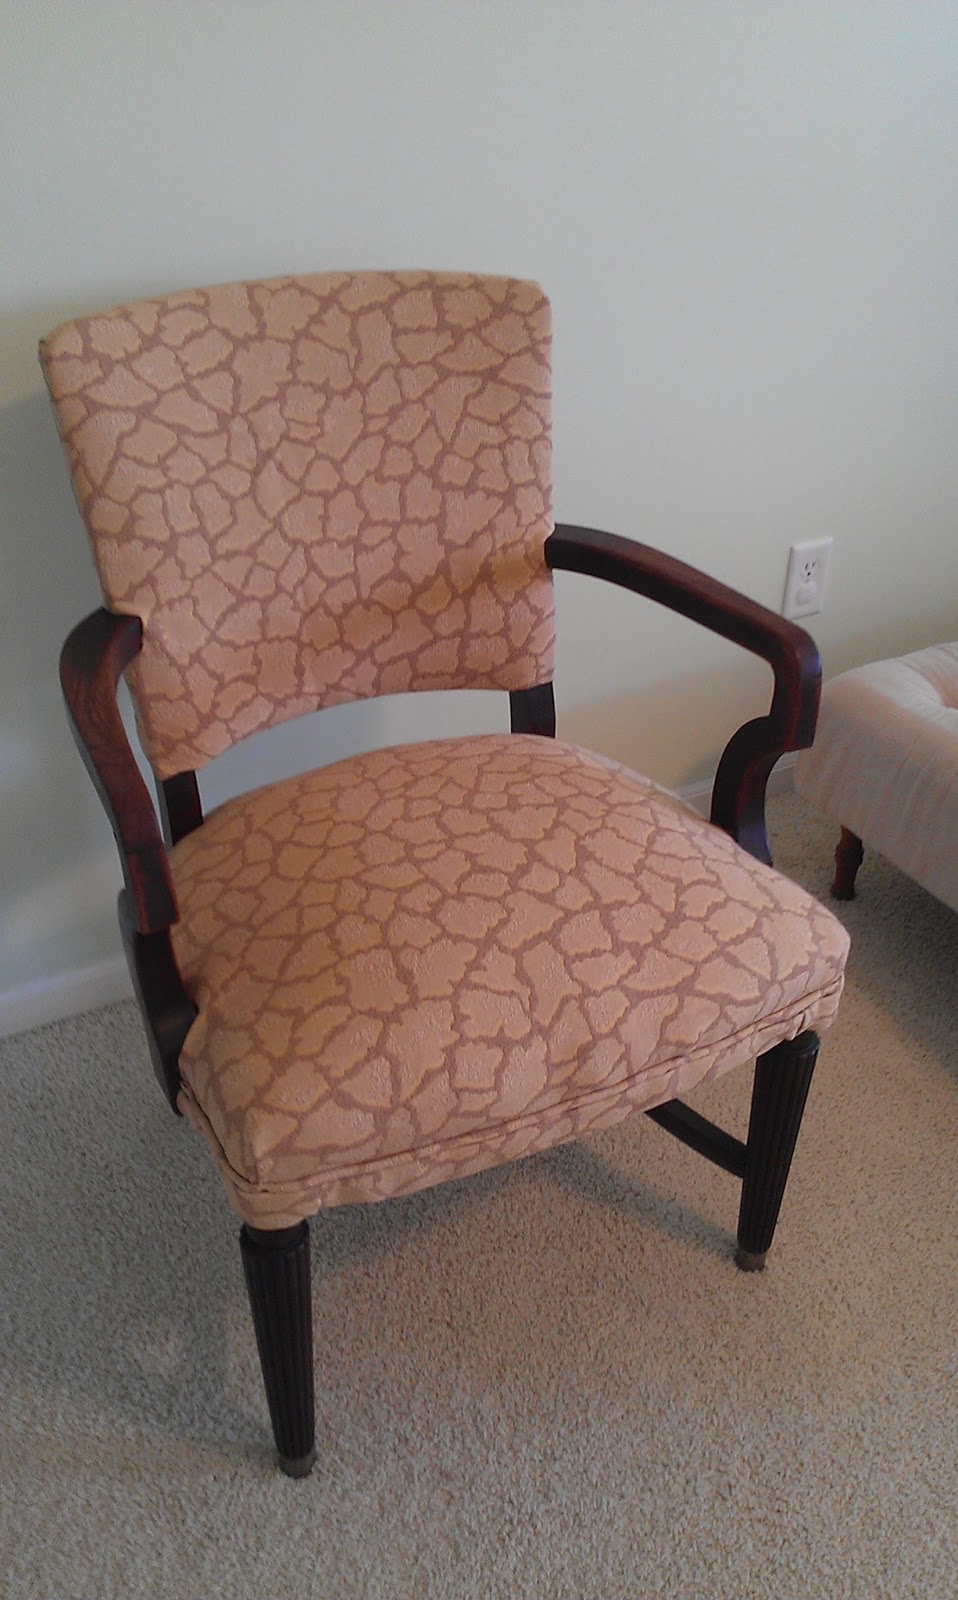 Thrifty Treasures Upholstering a chair